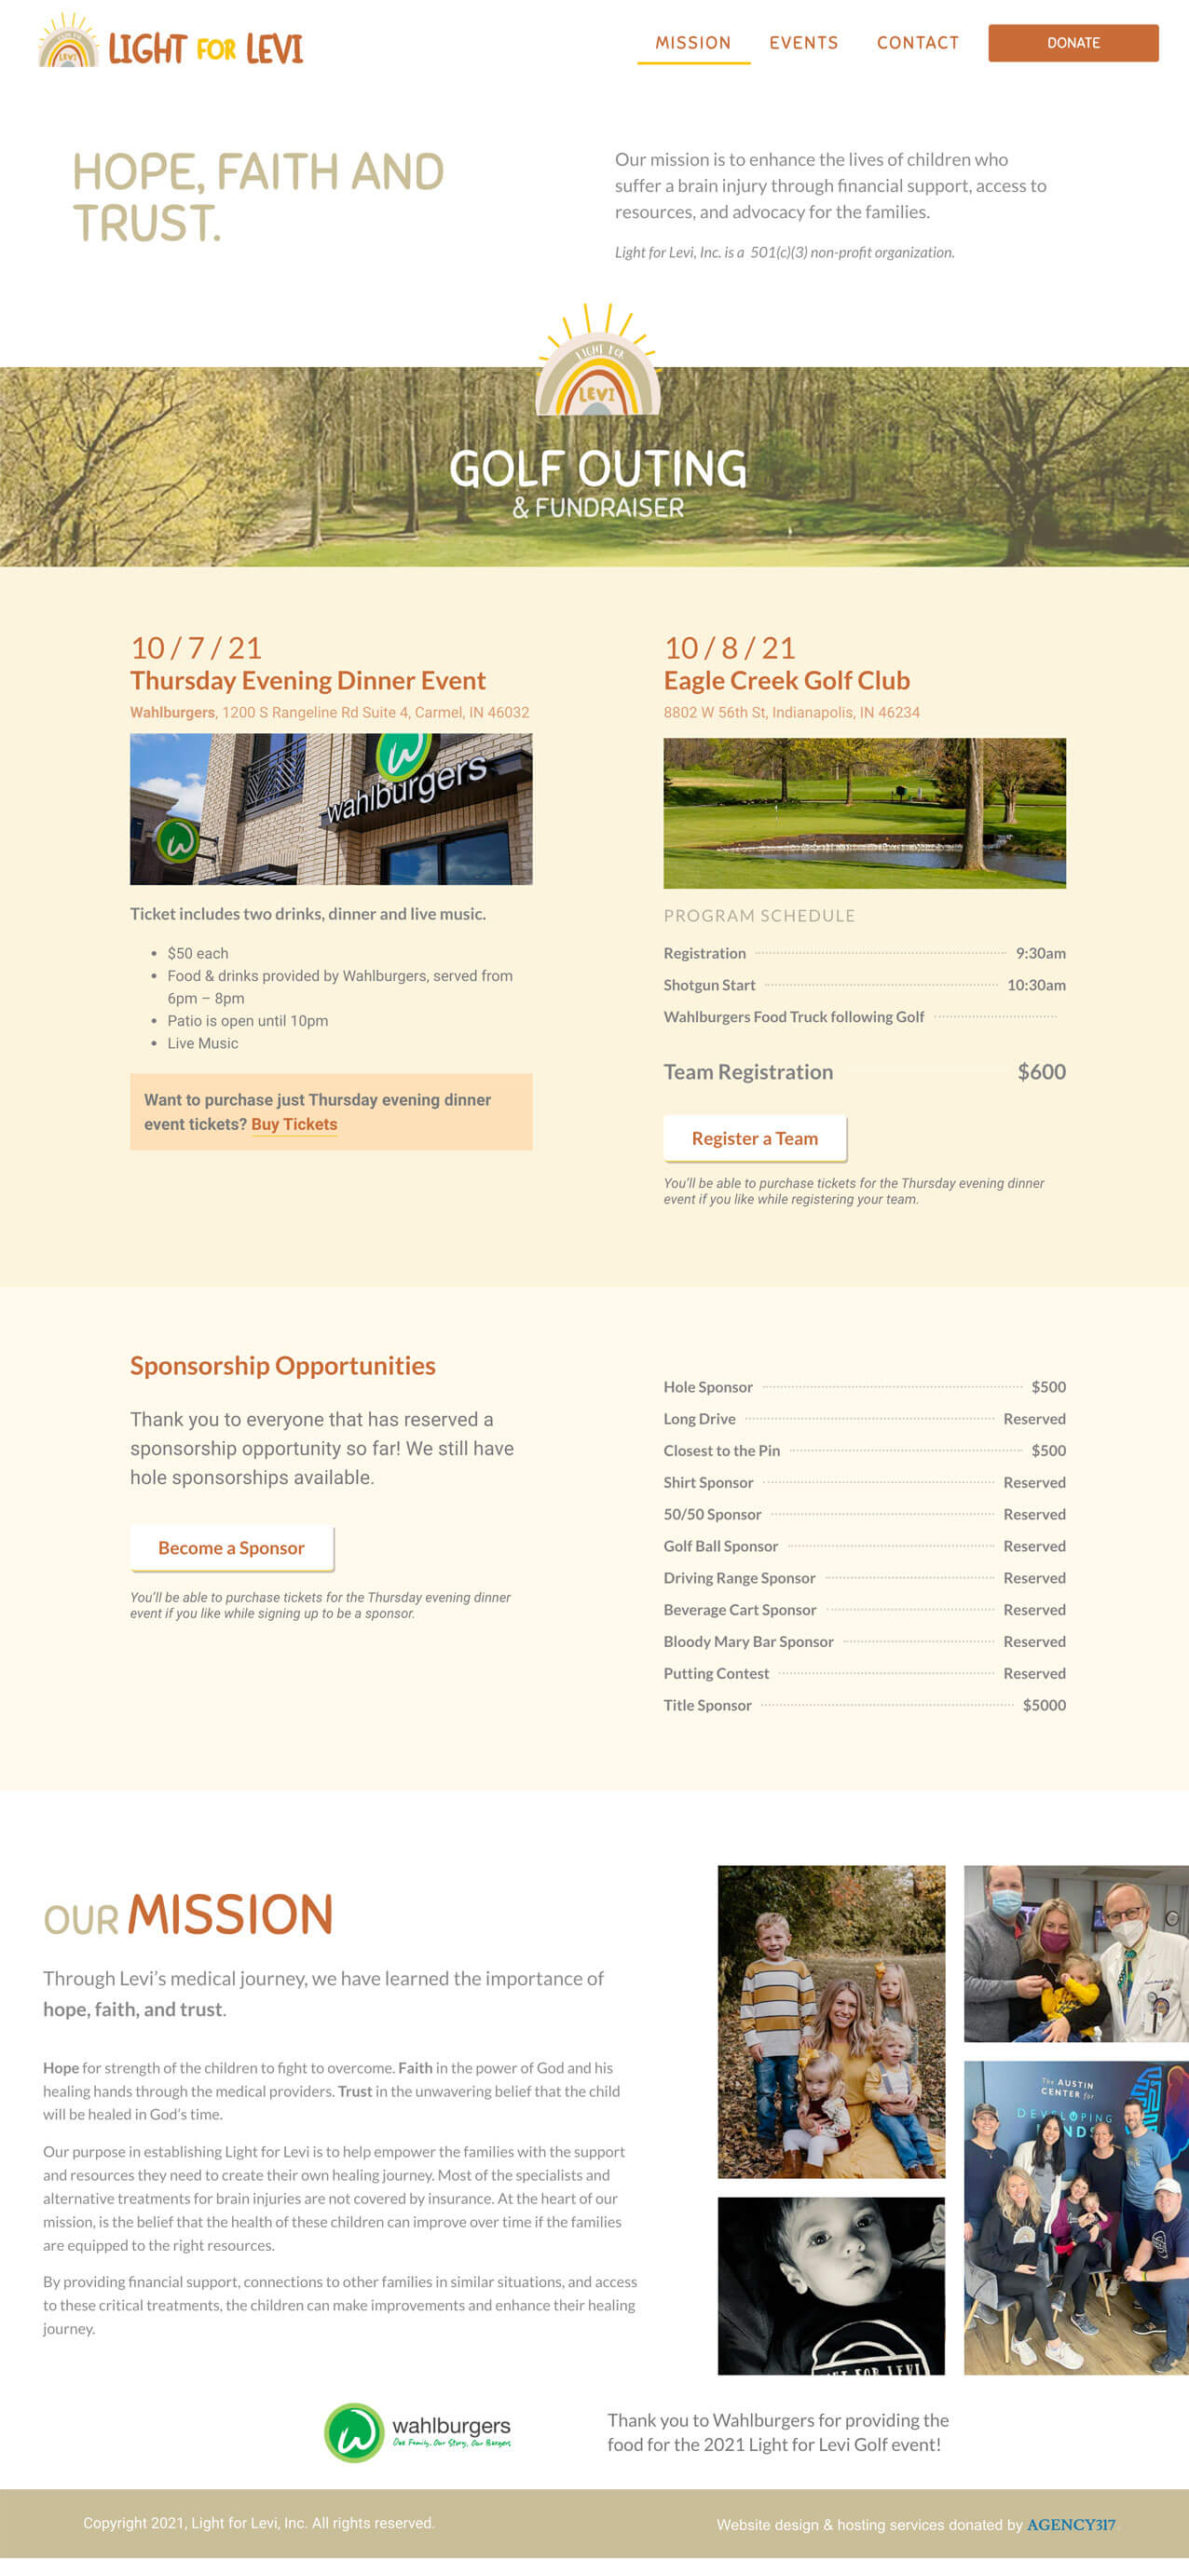 Homepage Design and Layout - Light for Levi